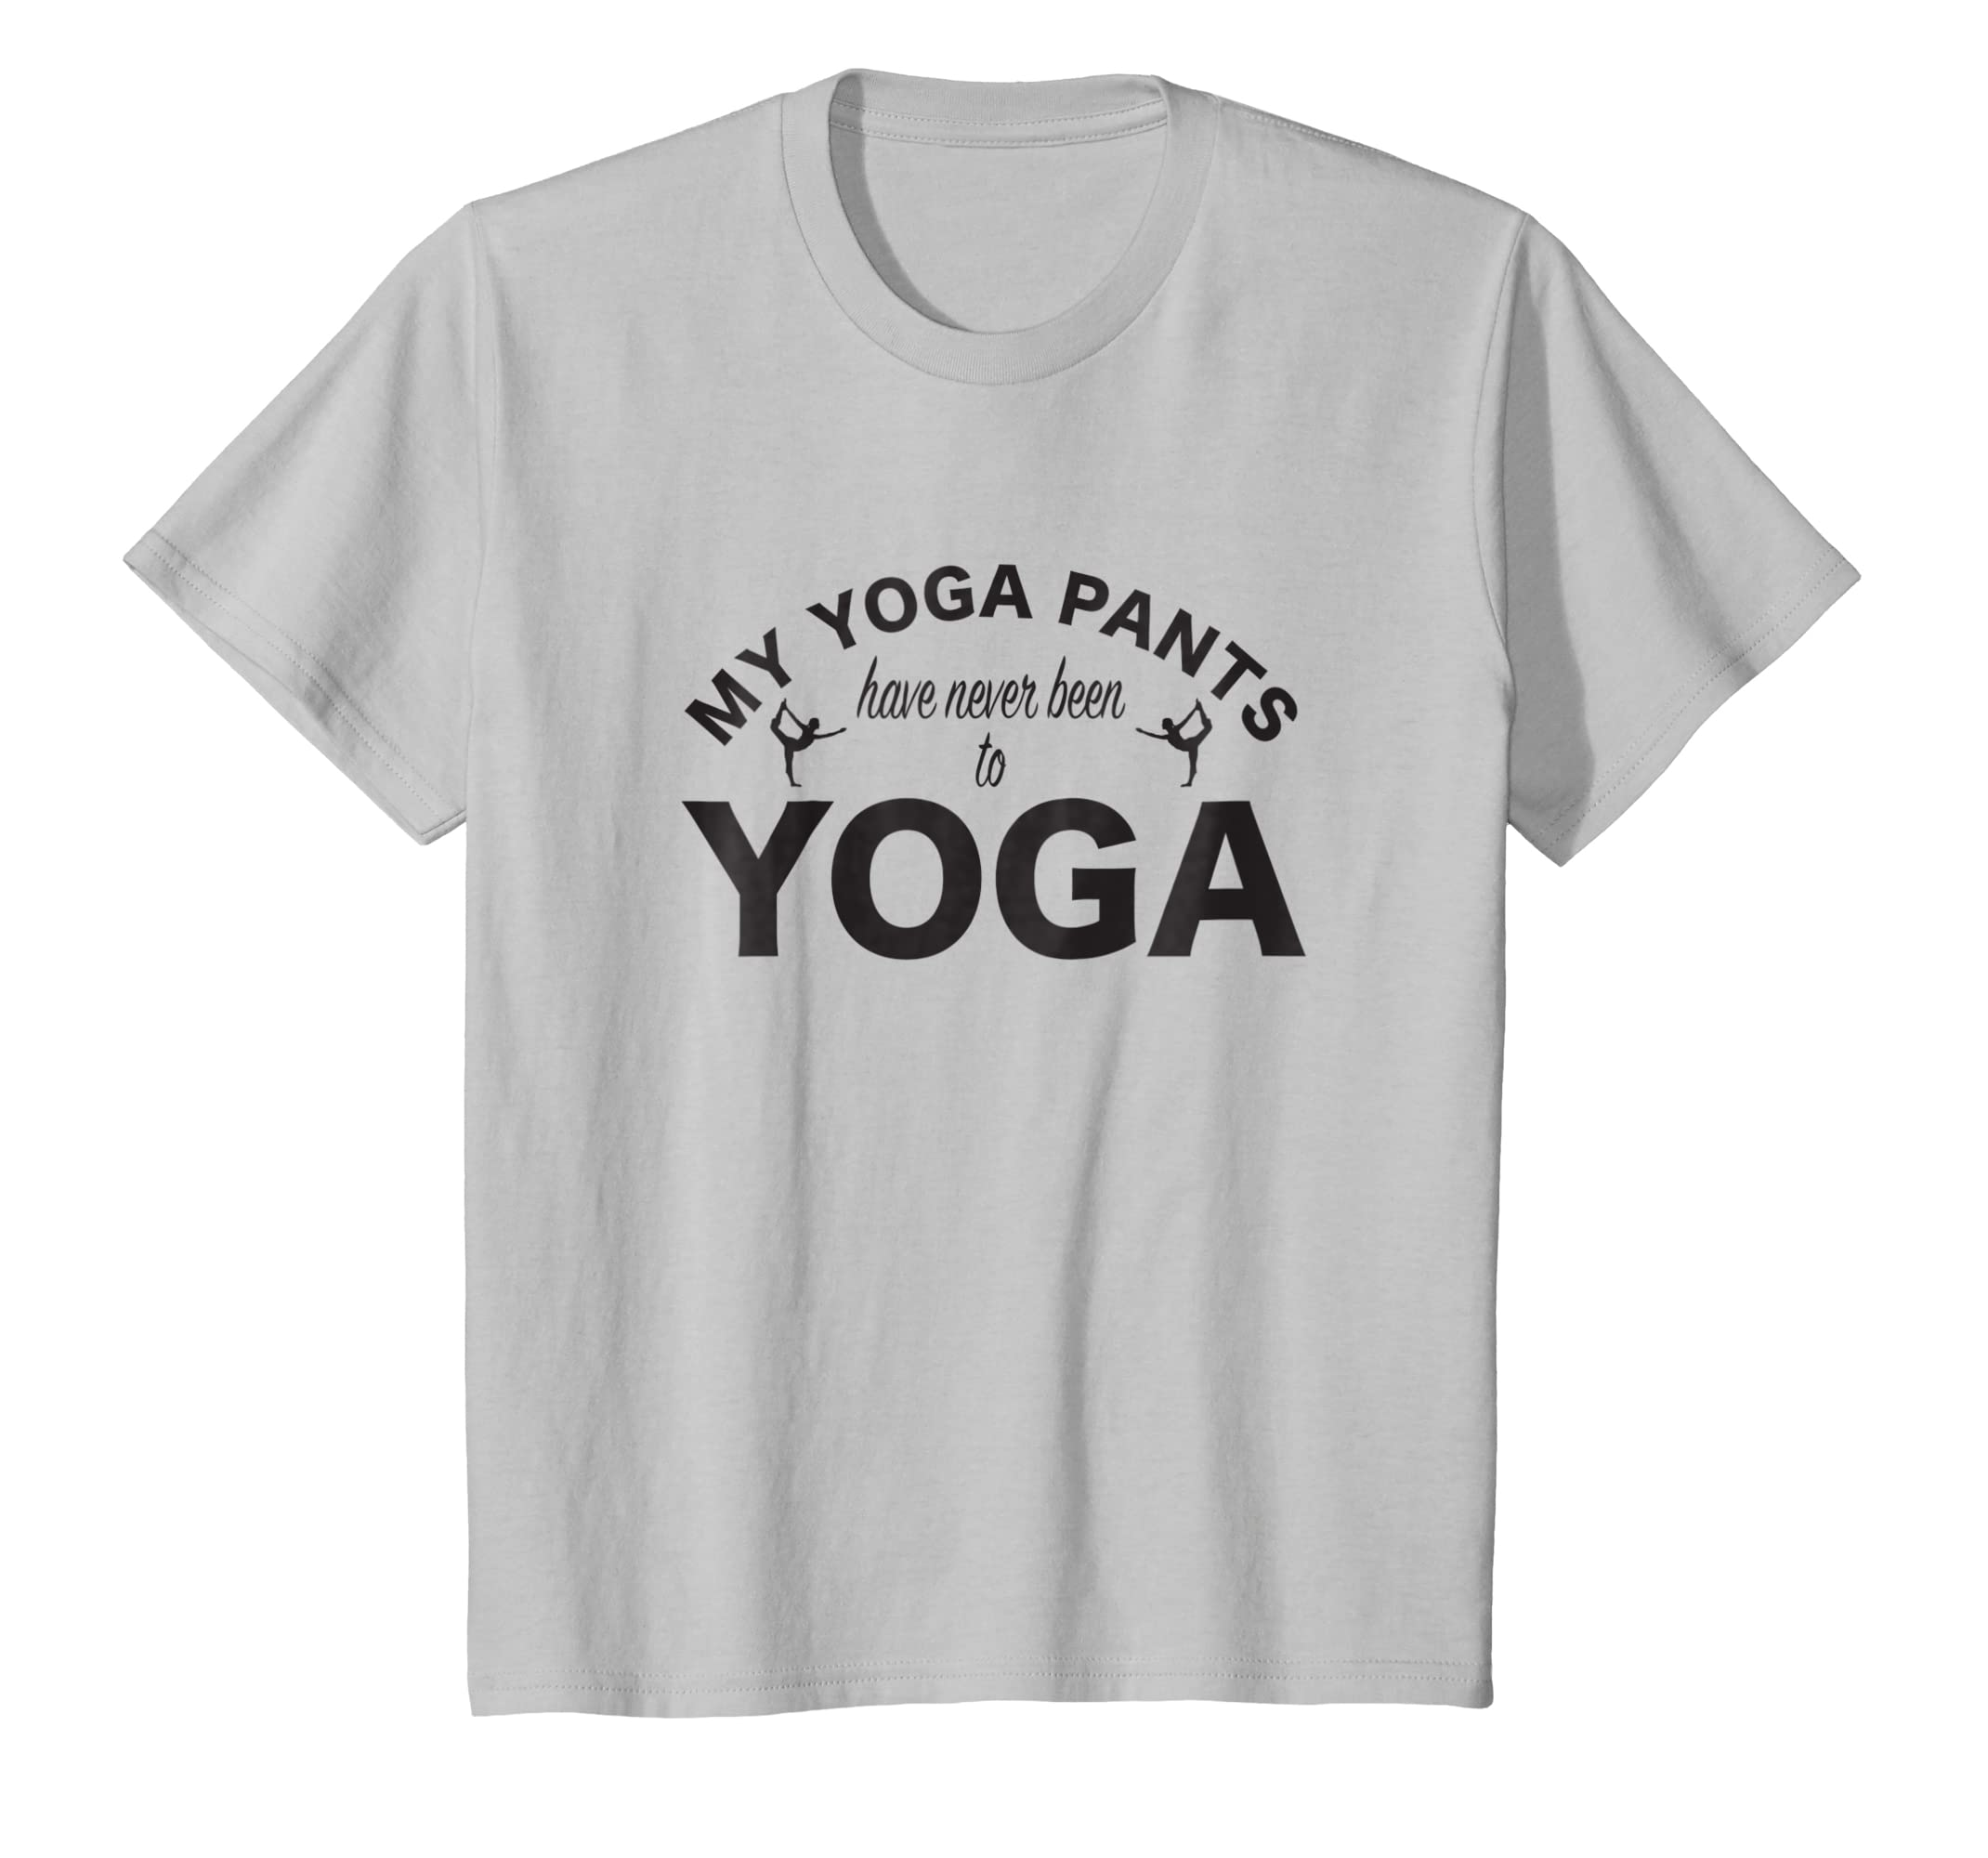 Amazon.com: Funny Yoga Pants T-Shirt Cute Yoga Shirt: Clothing